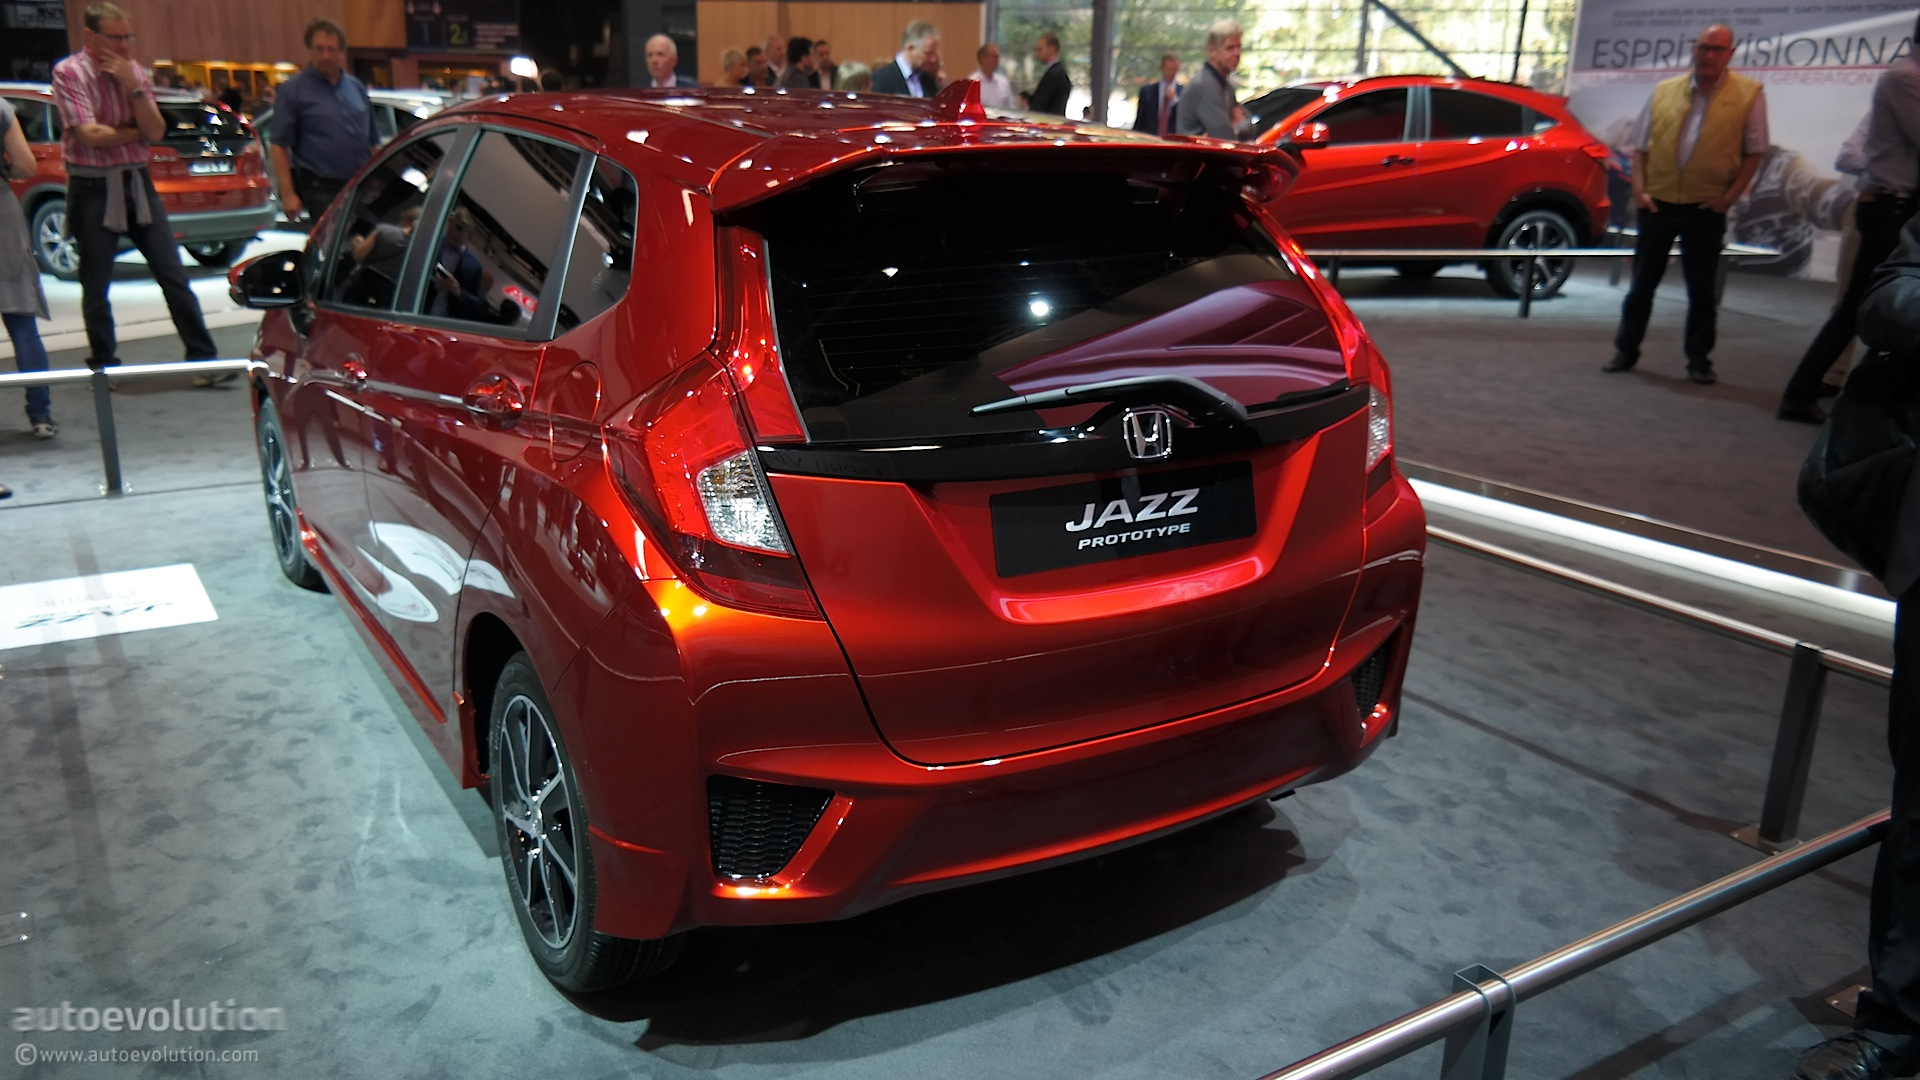 new honda jazz debuts at paris motor show 2014 live photos autoevolution. Black Bedroom Furniture Sets. Home Design Ideas